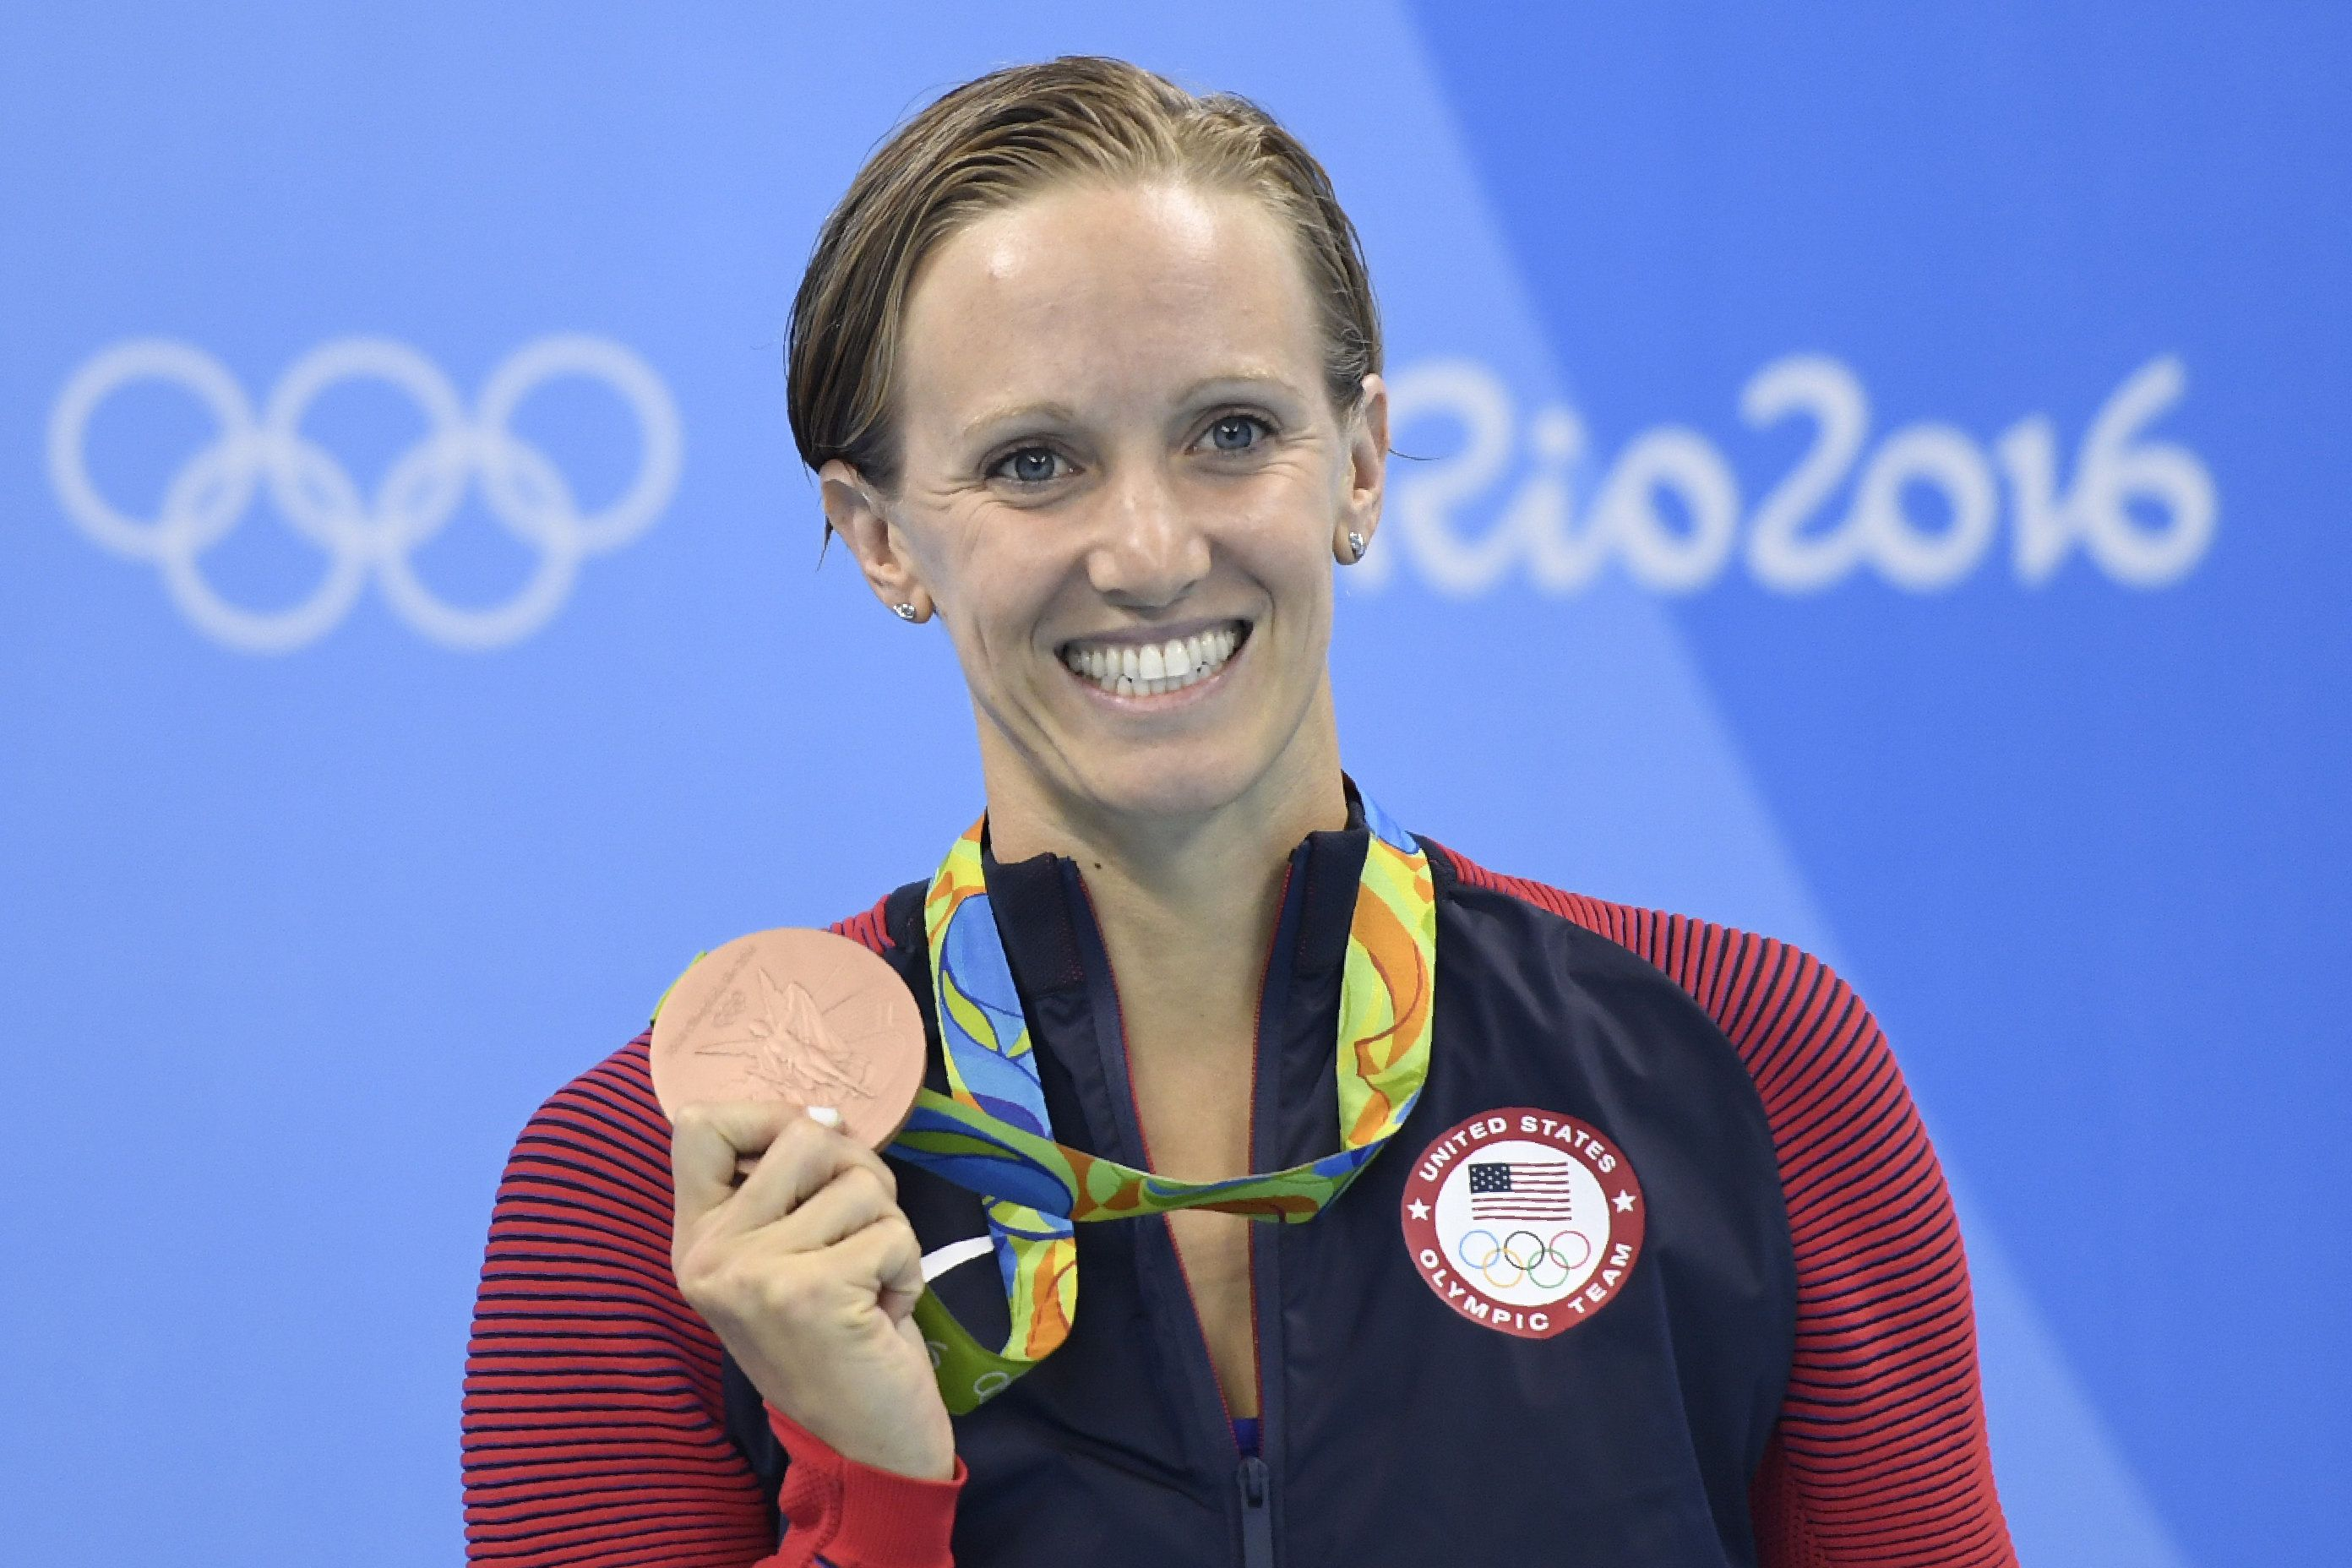 U.S. Olympian Dana Vollmer won bronze in the Women's 100m Butterfly at the 2016 Olympics, after giving birth to her first son